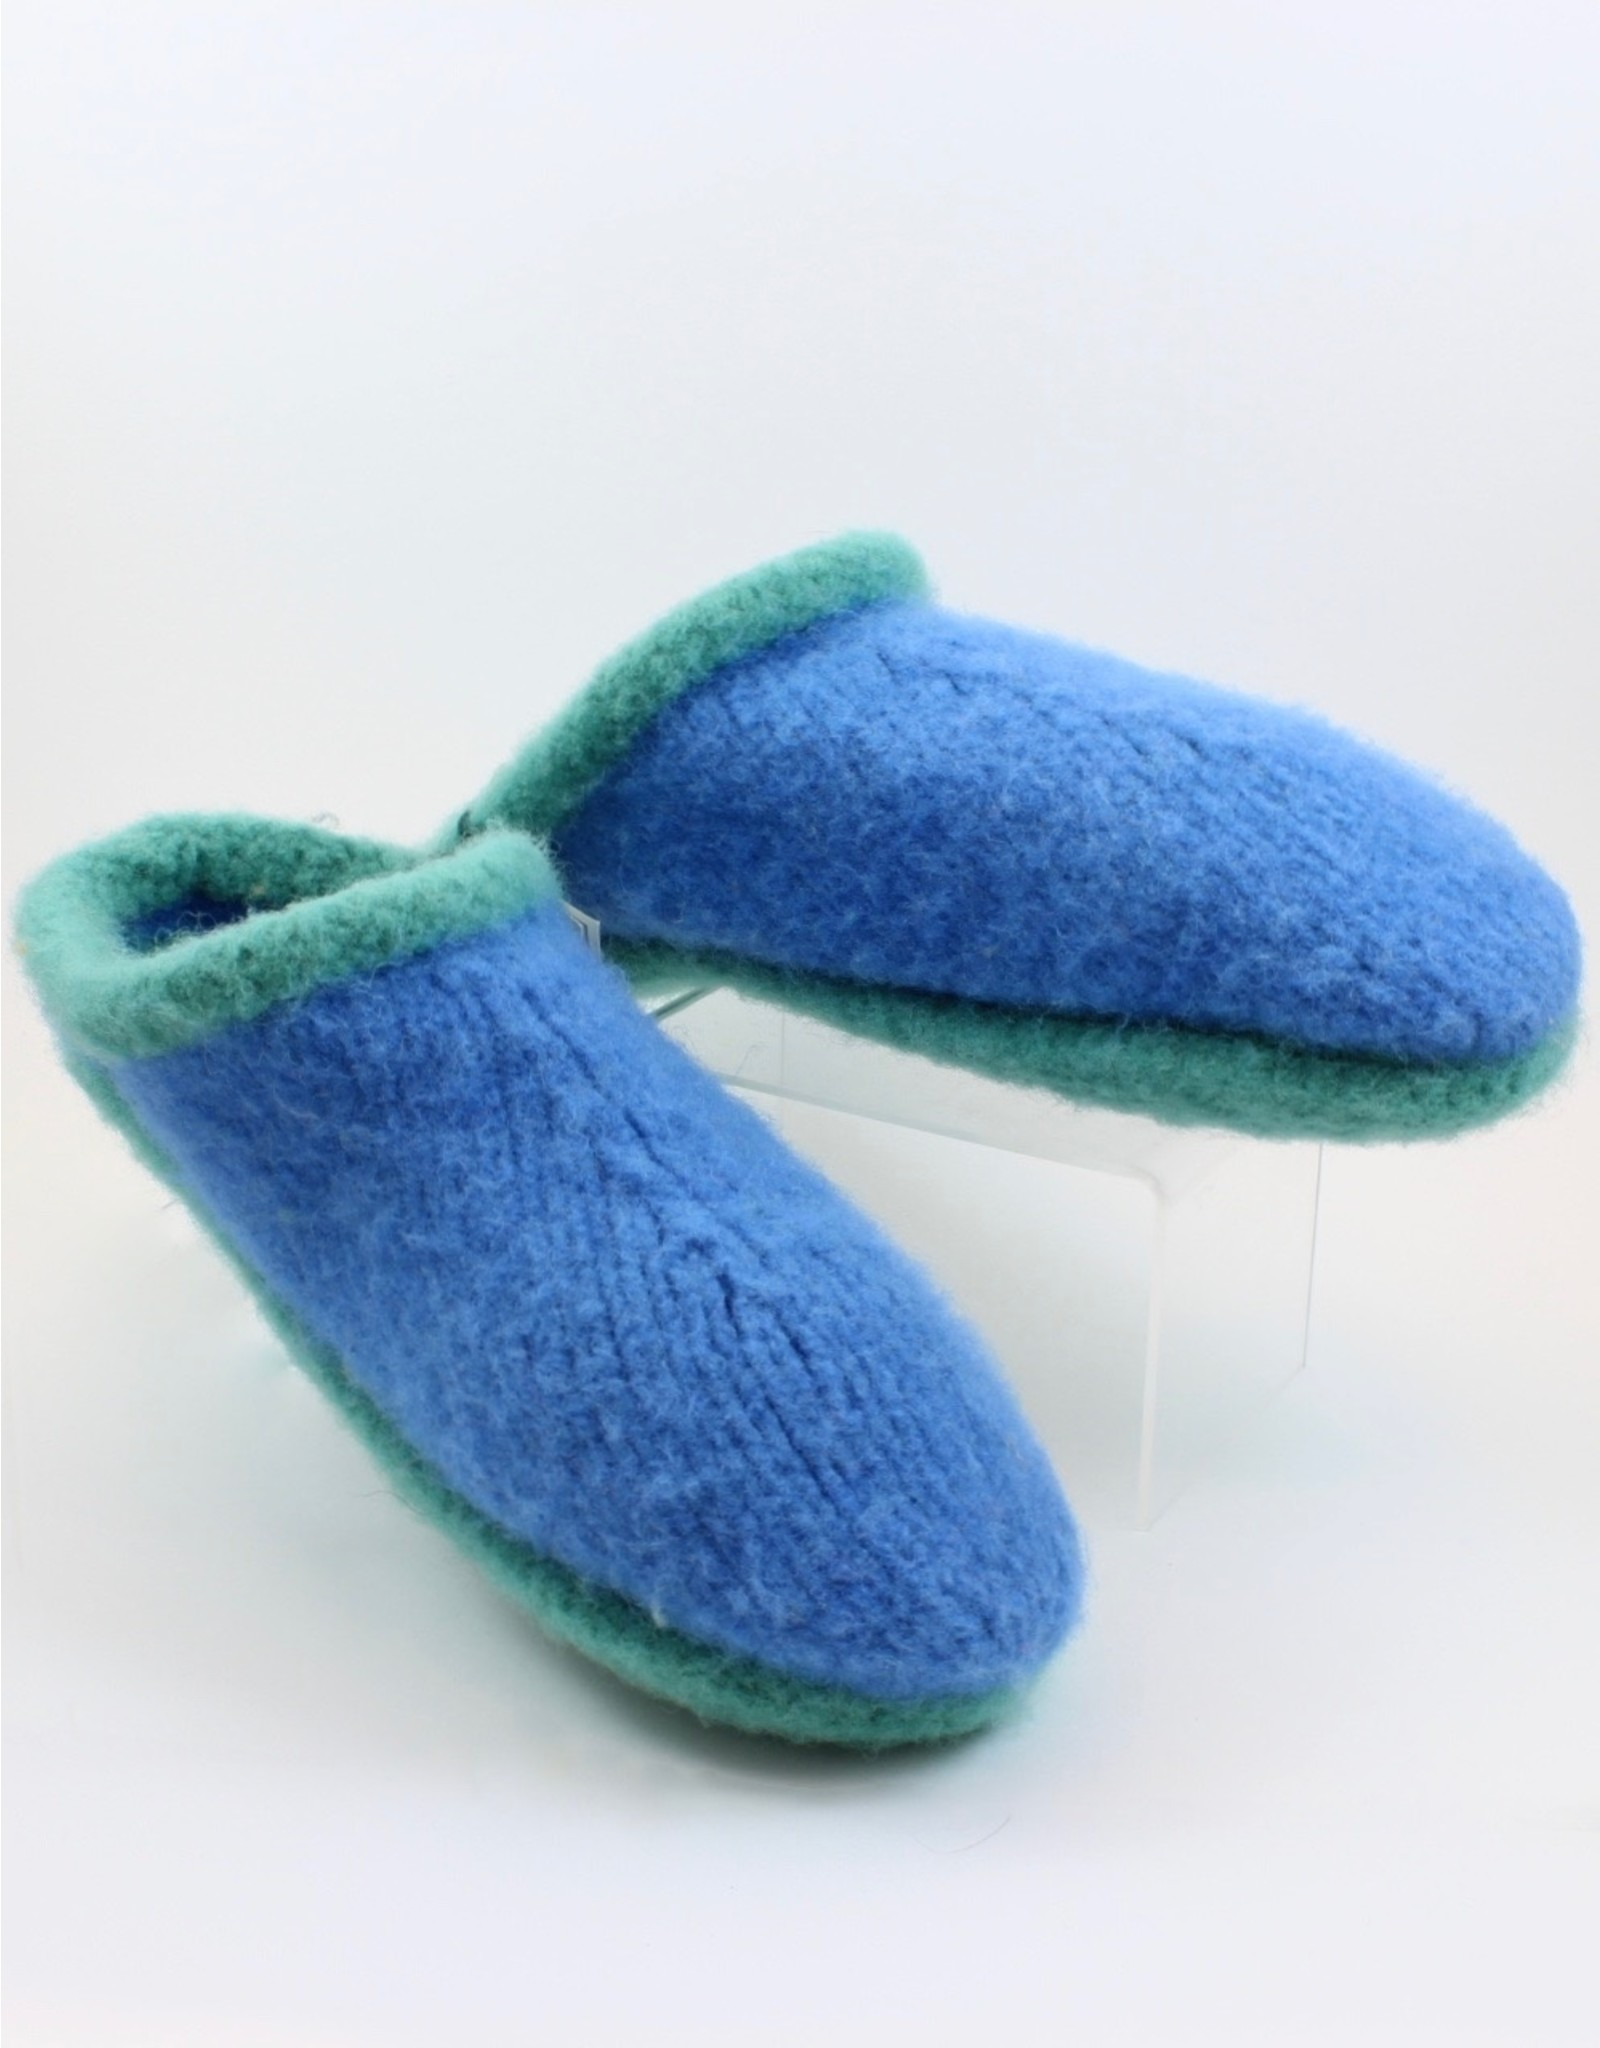 Lester Wood/Lynne Pascoe Wool Slippers by Sheep's Clothing Inc.